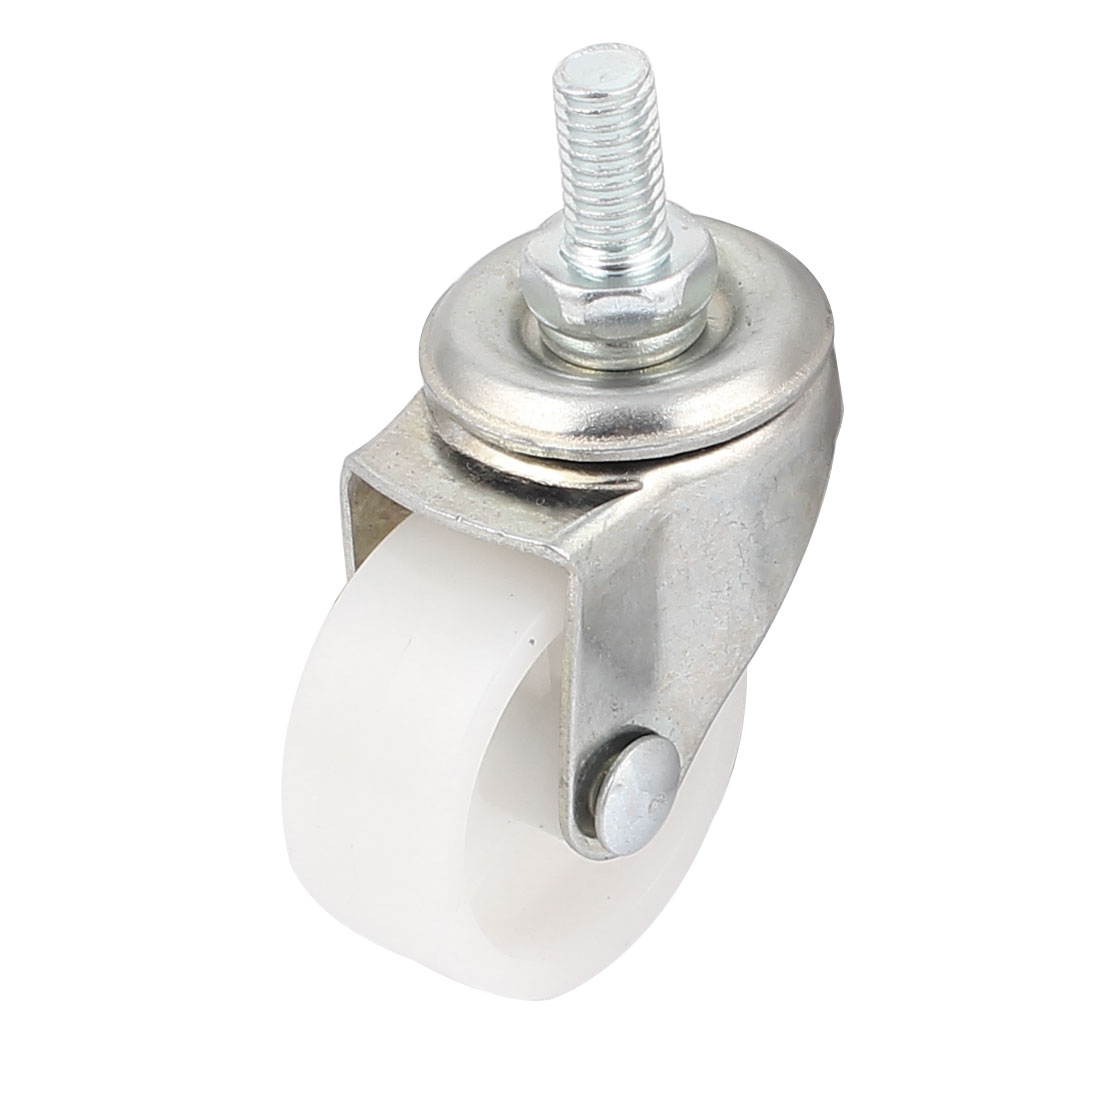 "Rotary Plate 7.5mm Thread 1.5"" Dia Nylon Ball Bearing Swivel Caster Wheel"